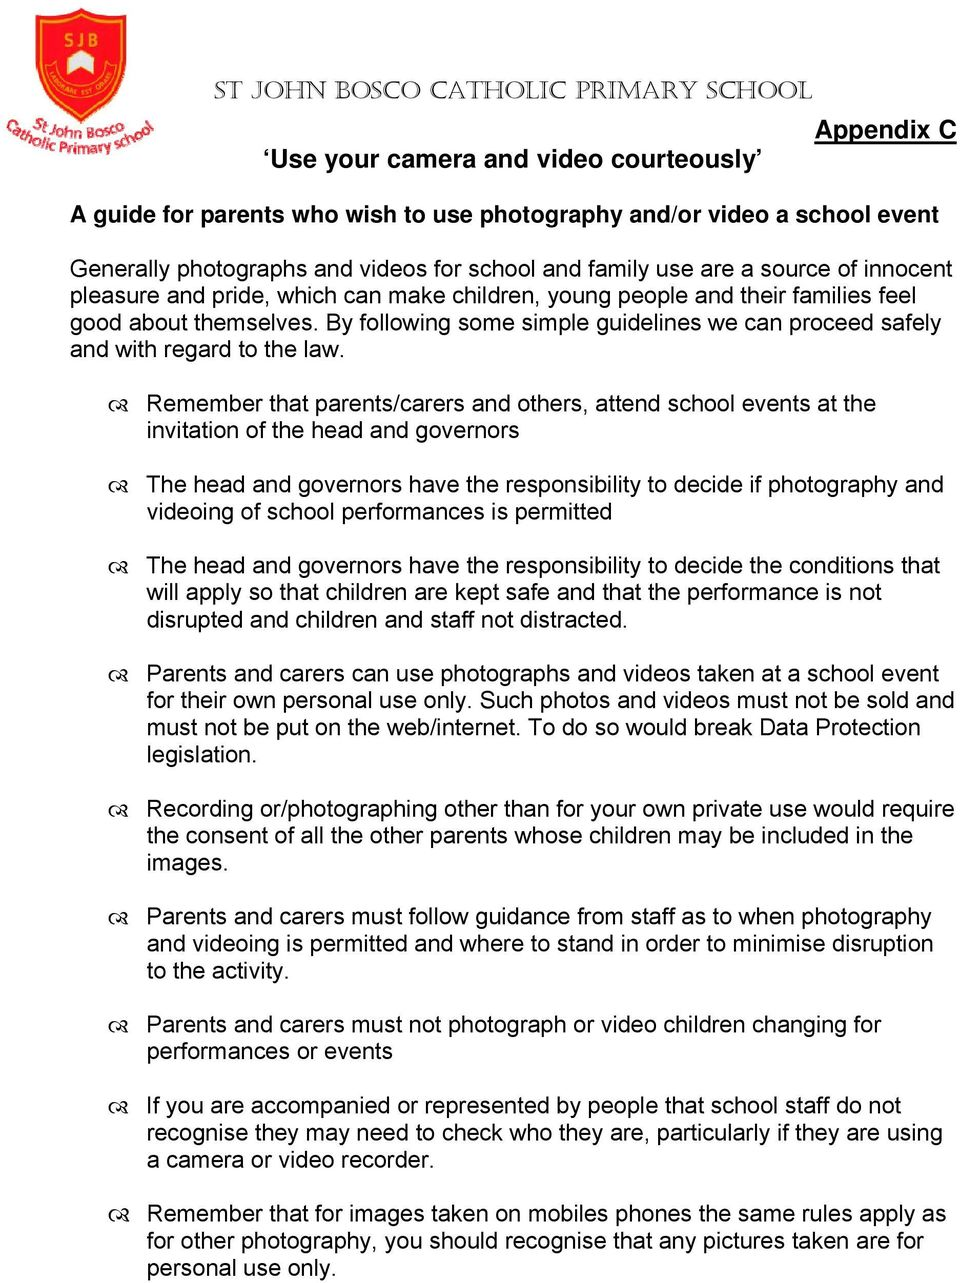 Remember that parents/carers and others, attend school events at the invitation of the head and governors The head and governors have the responsibility to decide if photography and videoing of